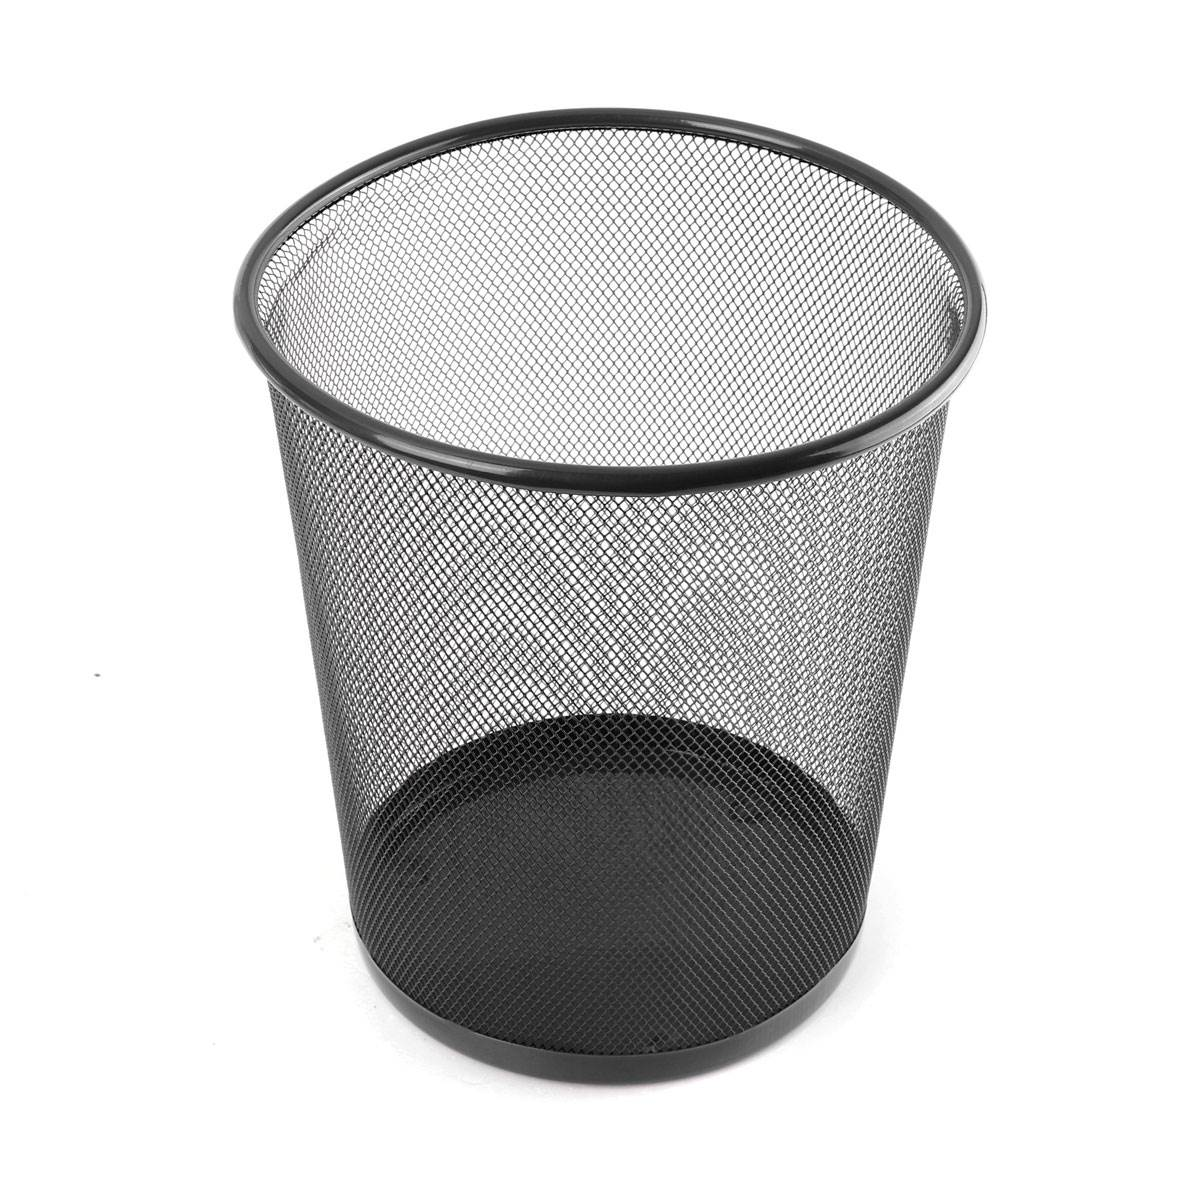 Charmant New Premier Colourful Metal Mesh Waste Paper Basket Bedroom Office Rubbish  Bin 6Colors In Waste Bins From Home U0026 Garden On Aliexpress.com | Alibaba  Group